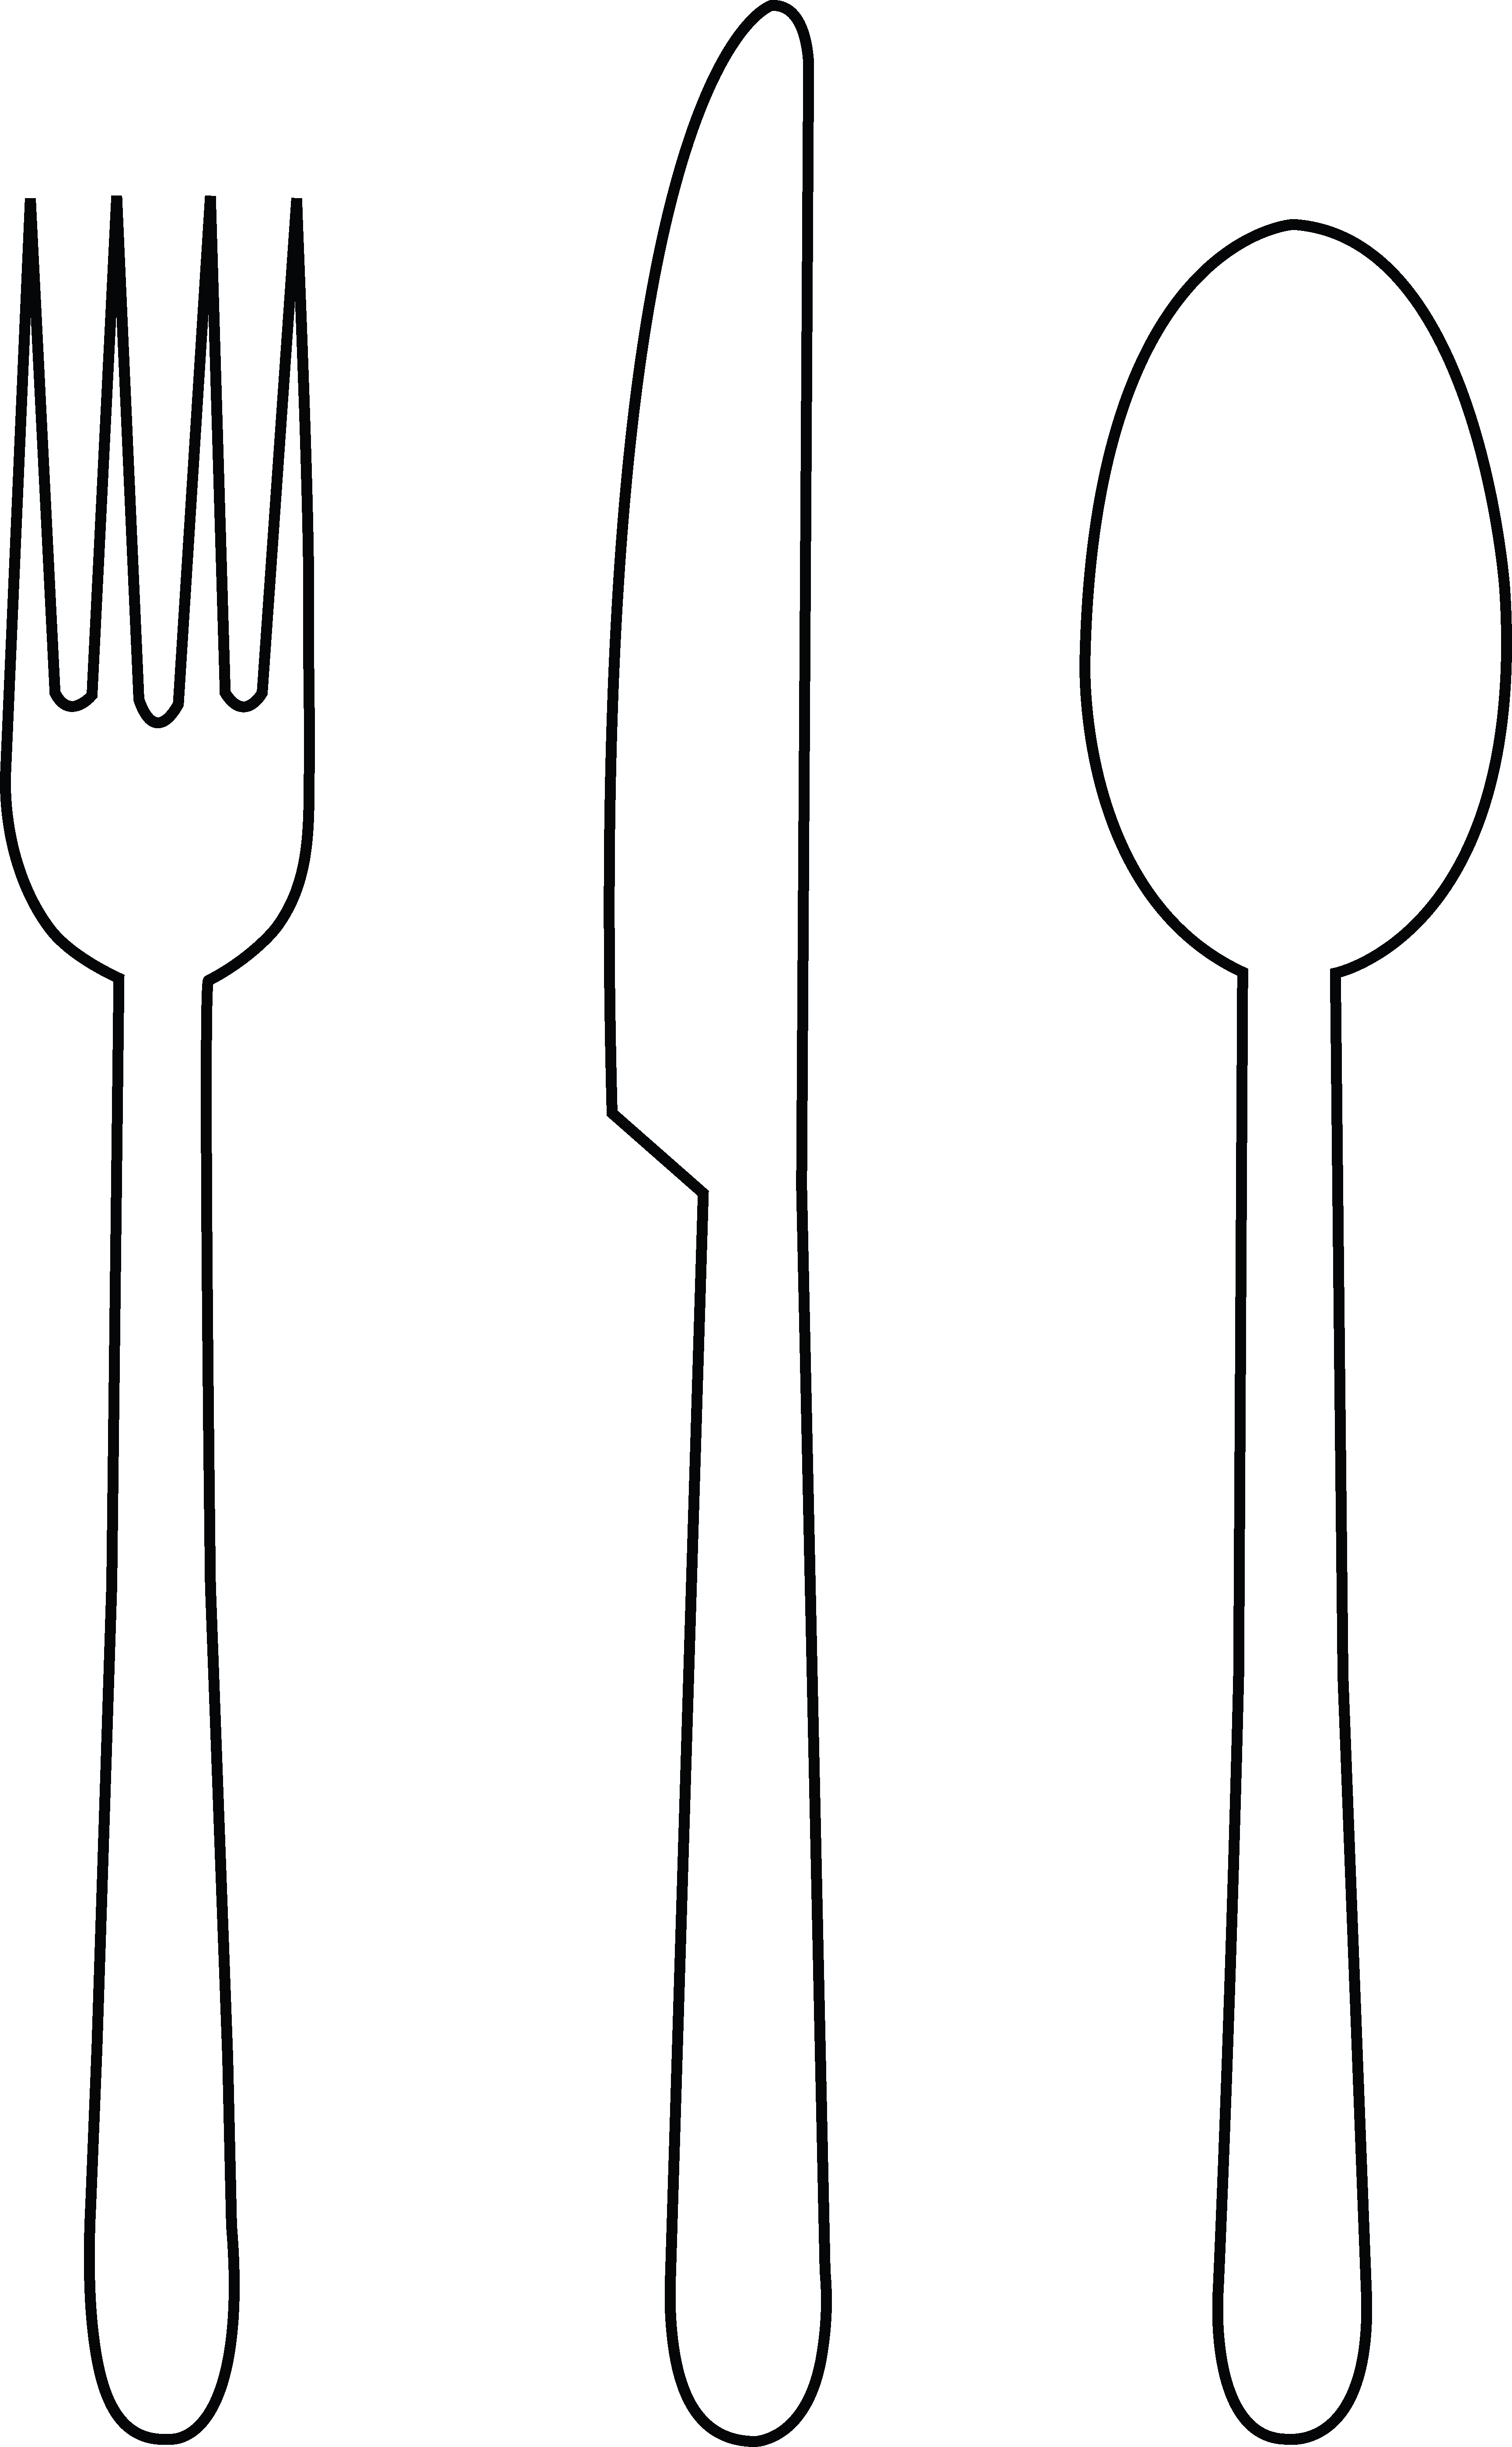 Fork knife silverware clip art free vector in open office drawing